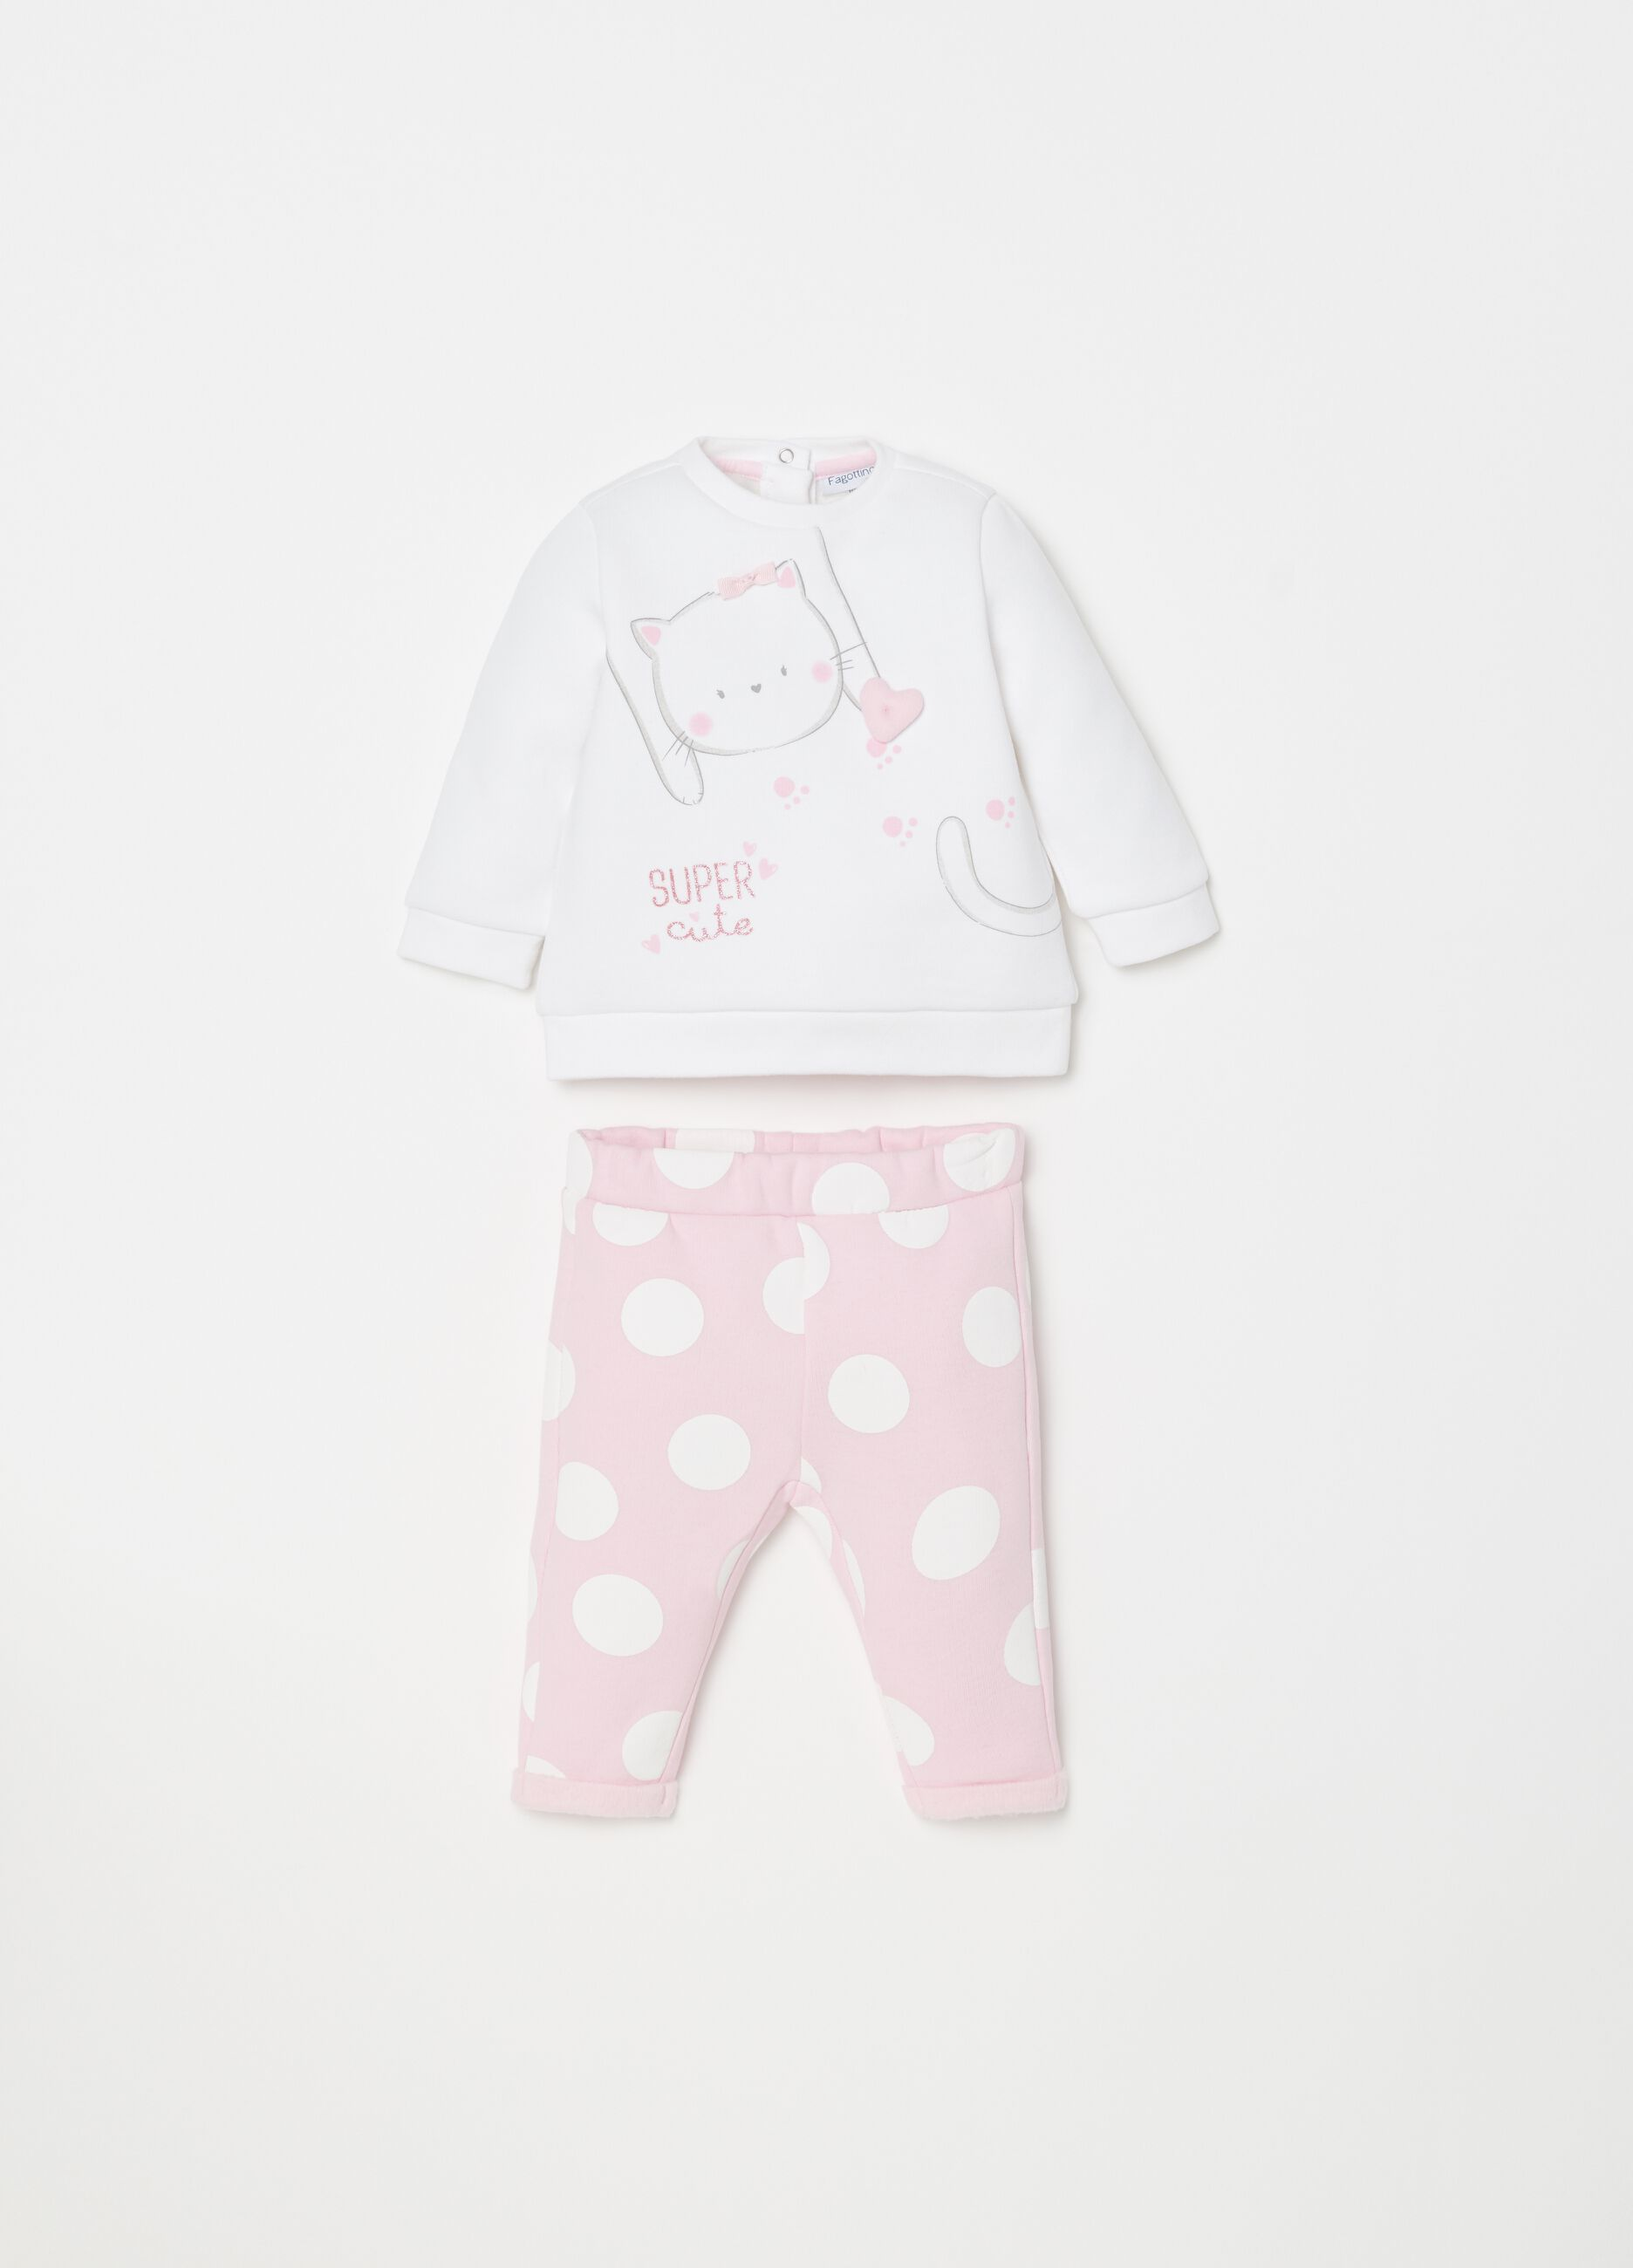 Baby Girls Sleepsuits Baby Grow Pyjamas Disney Minnie Mouse T//b Upto 24 Months Tiny Baby, red no feet